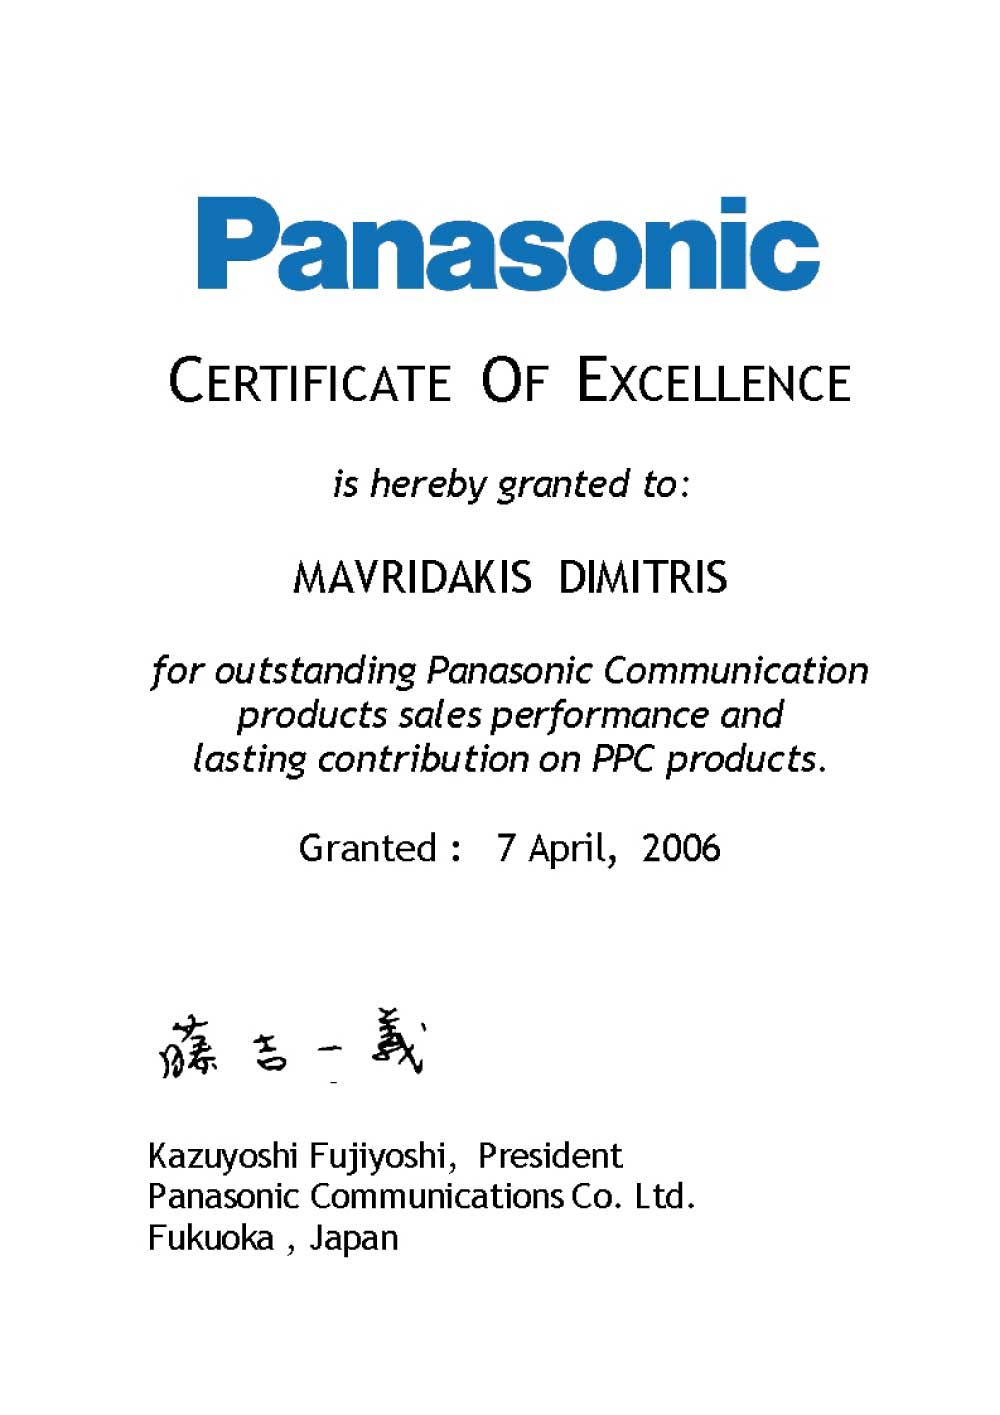 Panasonic - Certificate of excellence